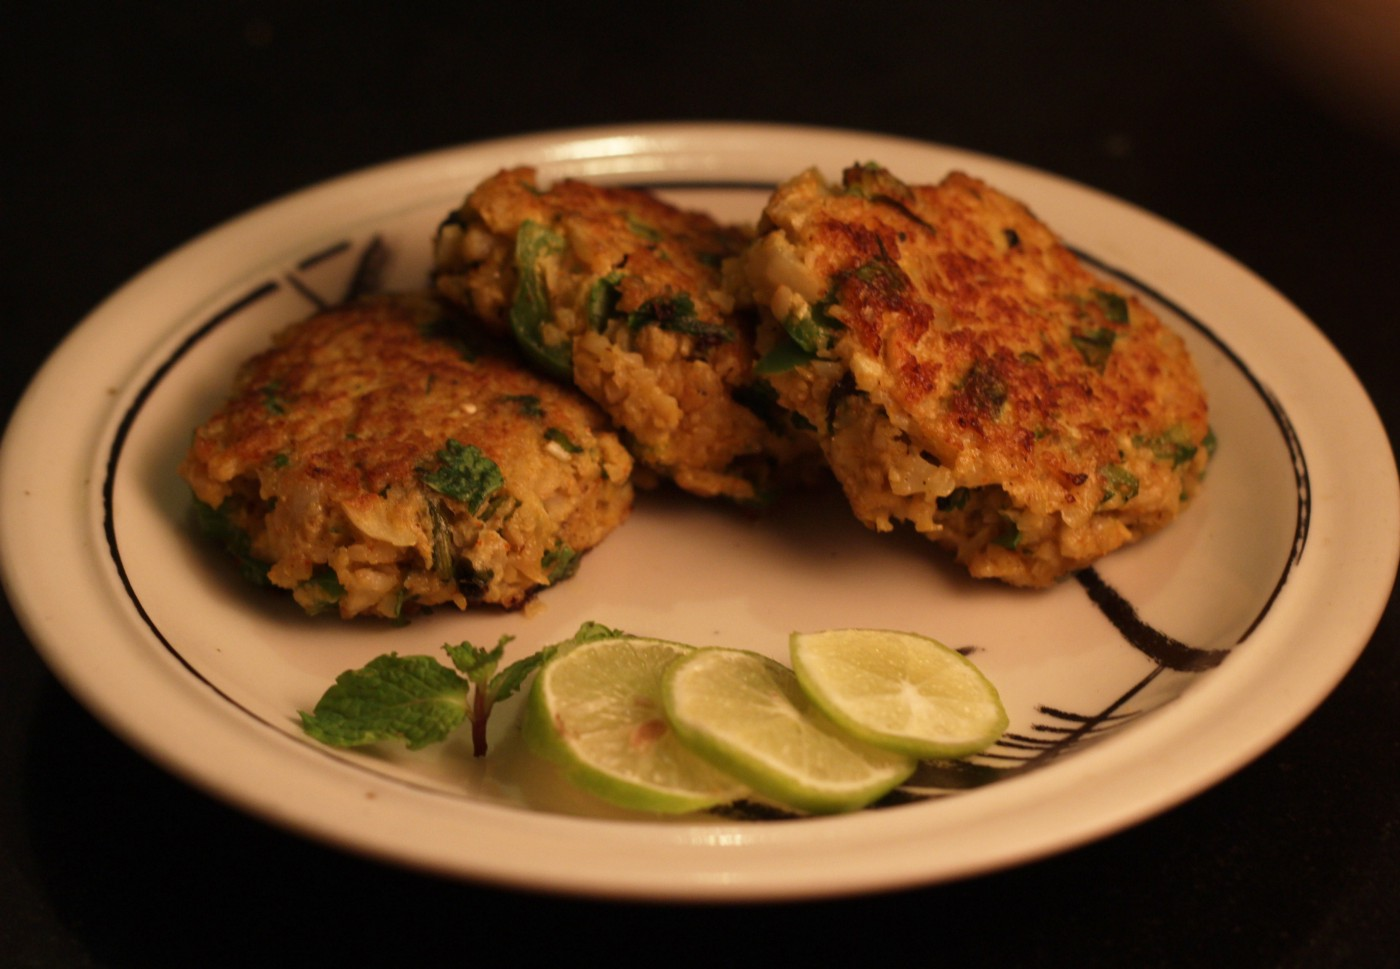 Cabbage keto cutlets